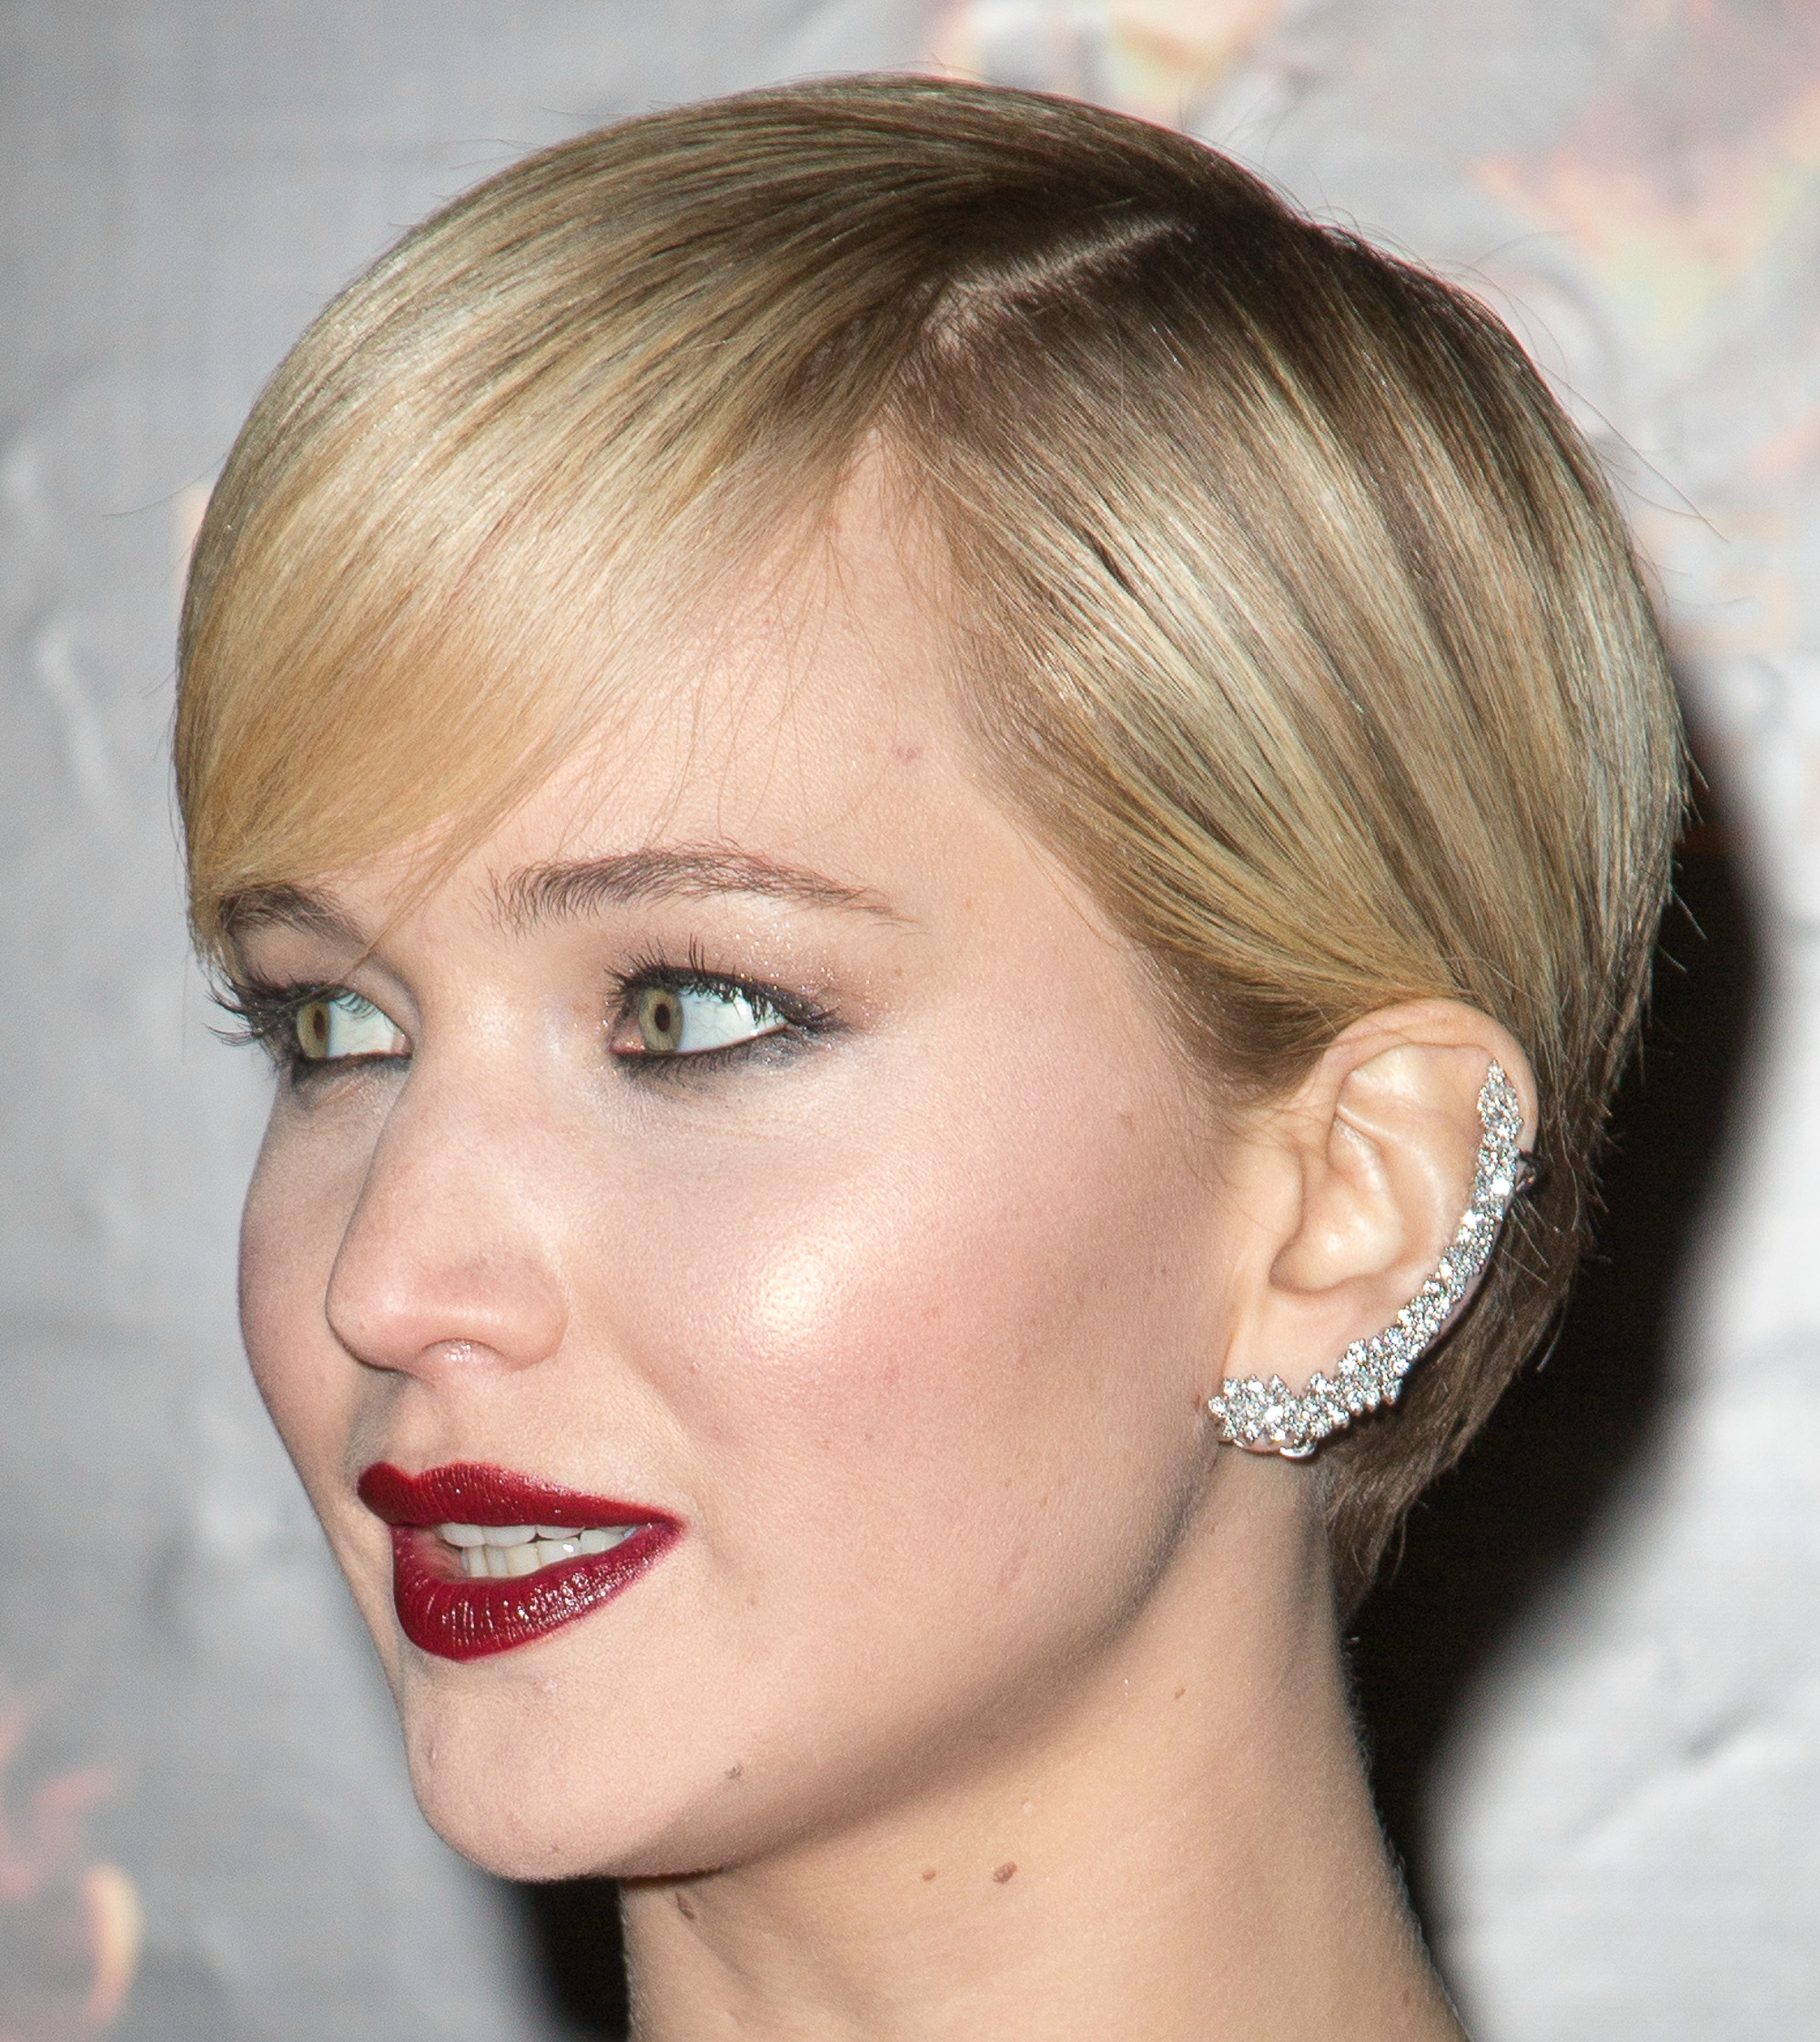 Shopping For Ear-Cuffs To Look Chic